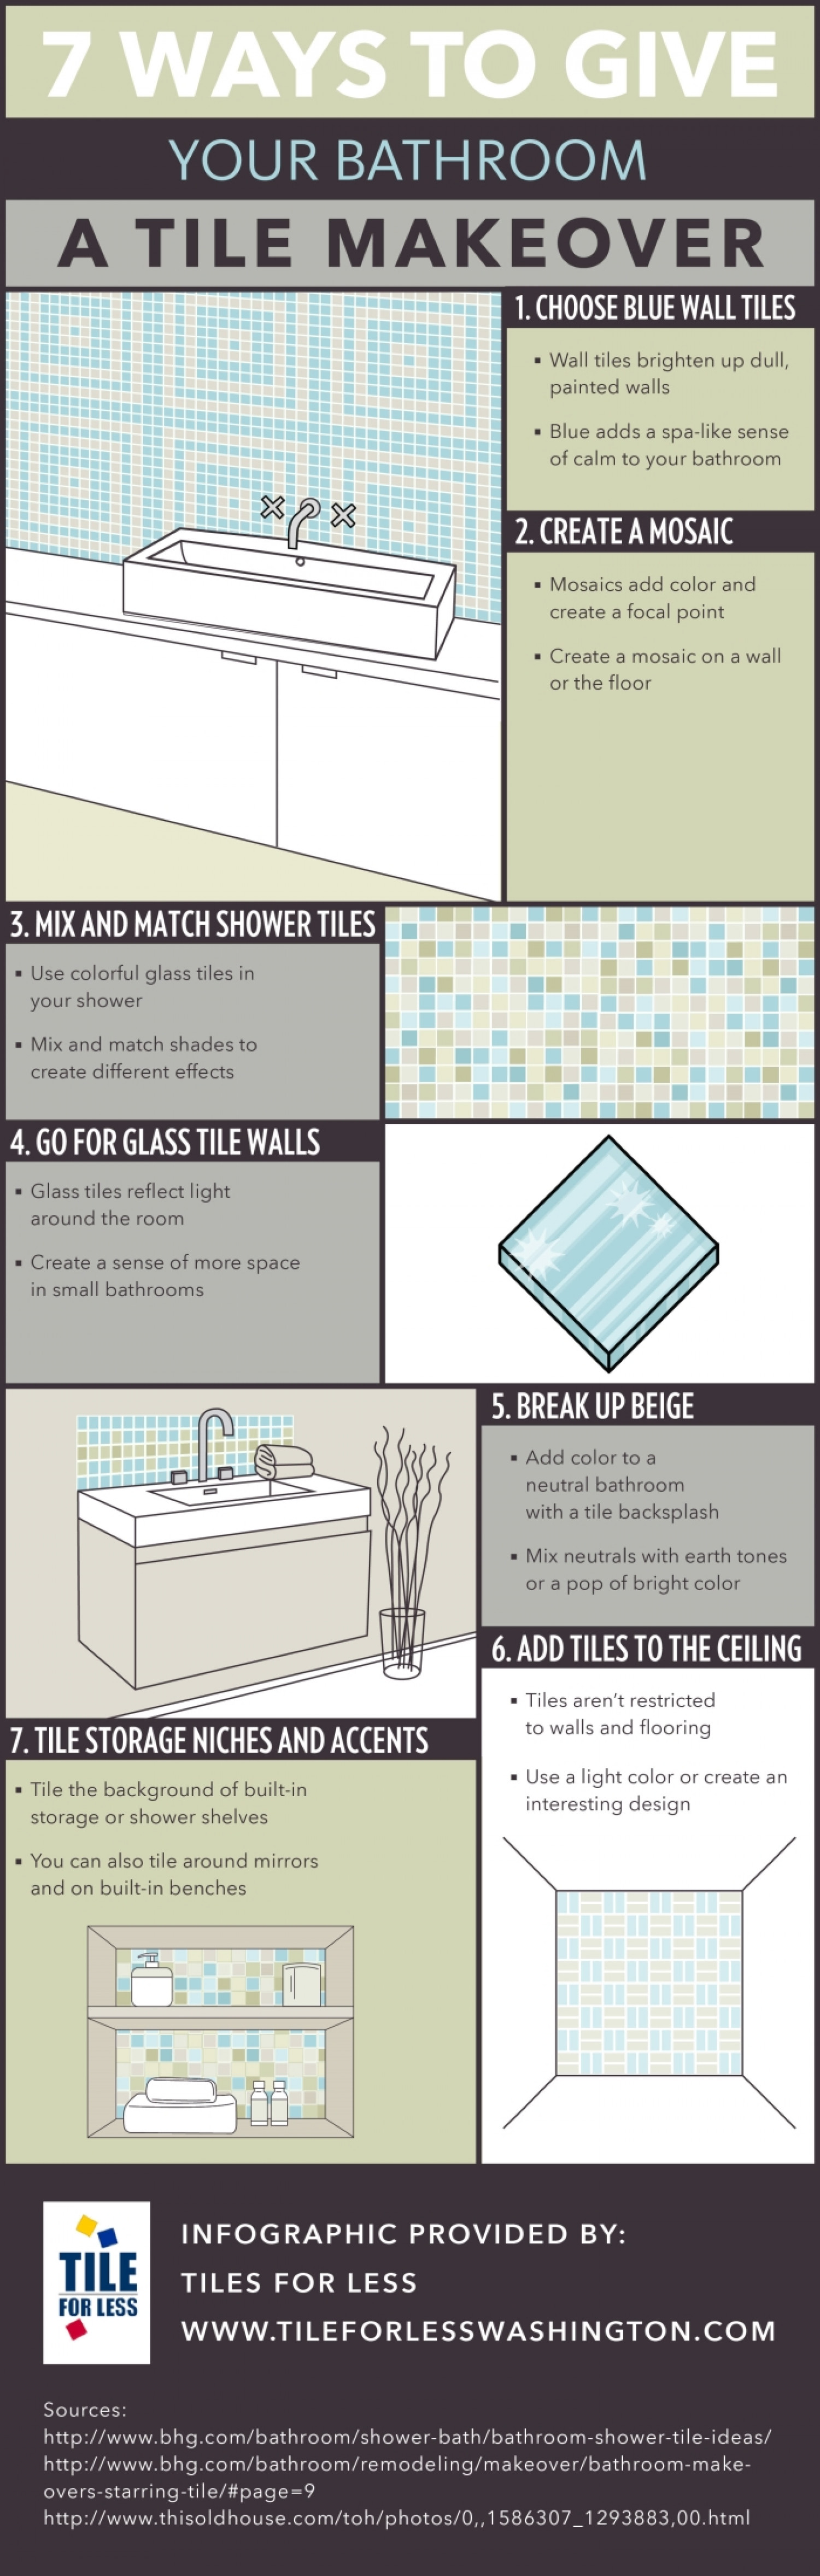 7 Ways to Give Your Bathroom a Tile Makeover  Infographic